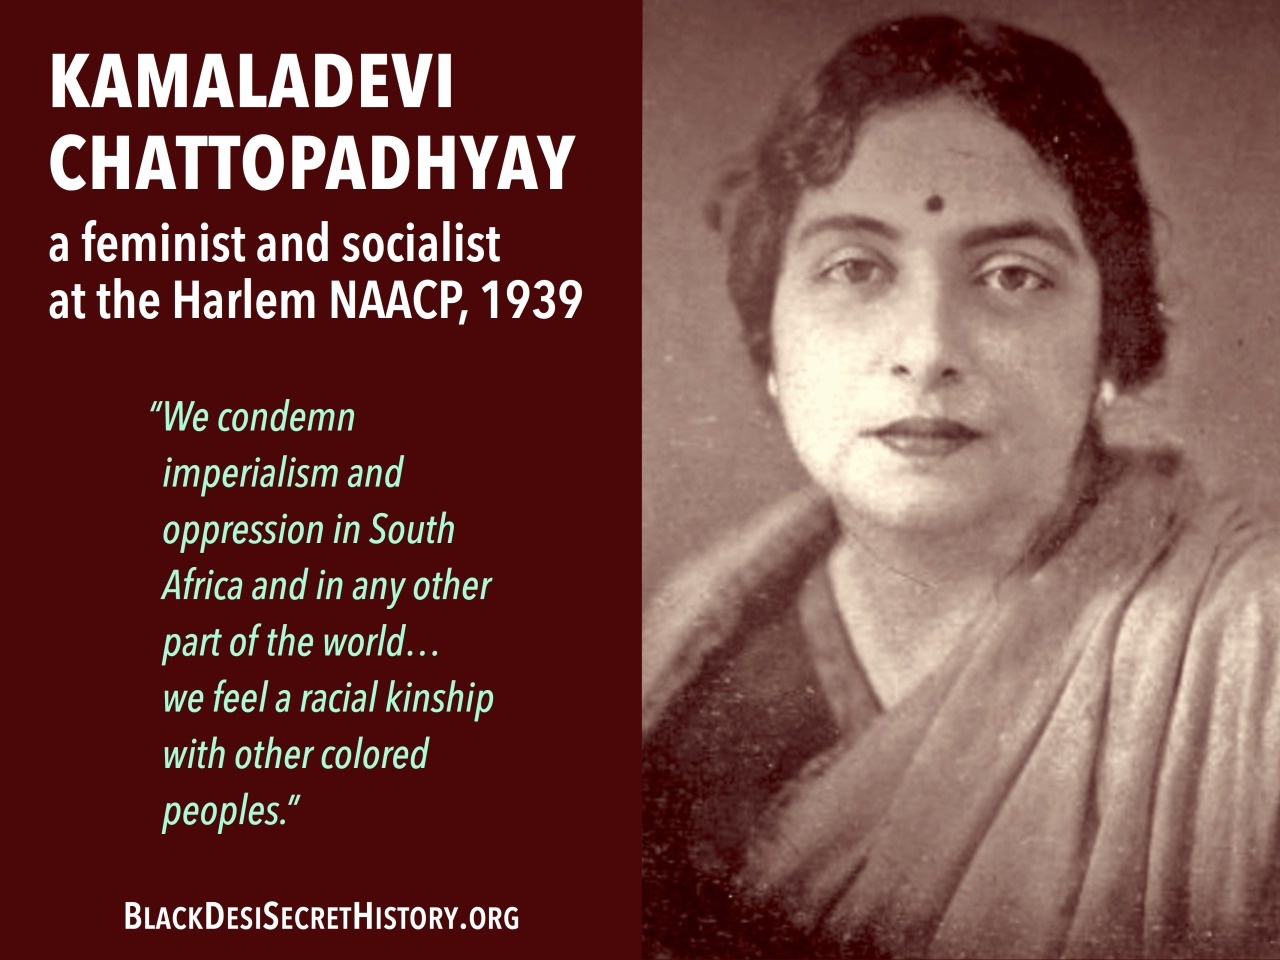 "KAMALADEVI CHATTOPADHYAY, a feminist and socialist at the Harlem NAACP, 1939: ""We condemn imperialism and oppression in South Africa and in any other part of the world…we feel a racial kinship with other colored peoples."""